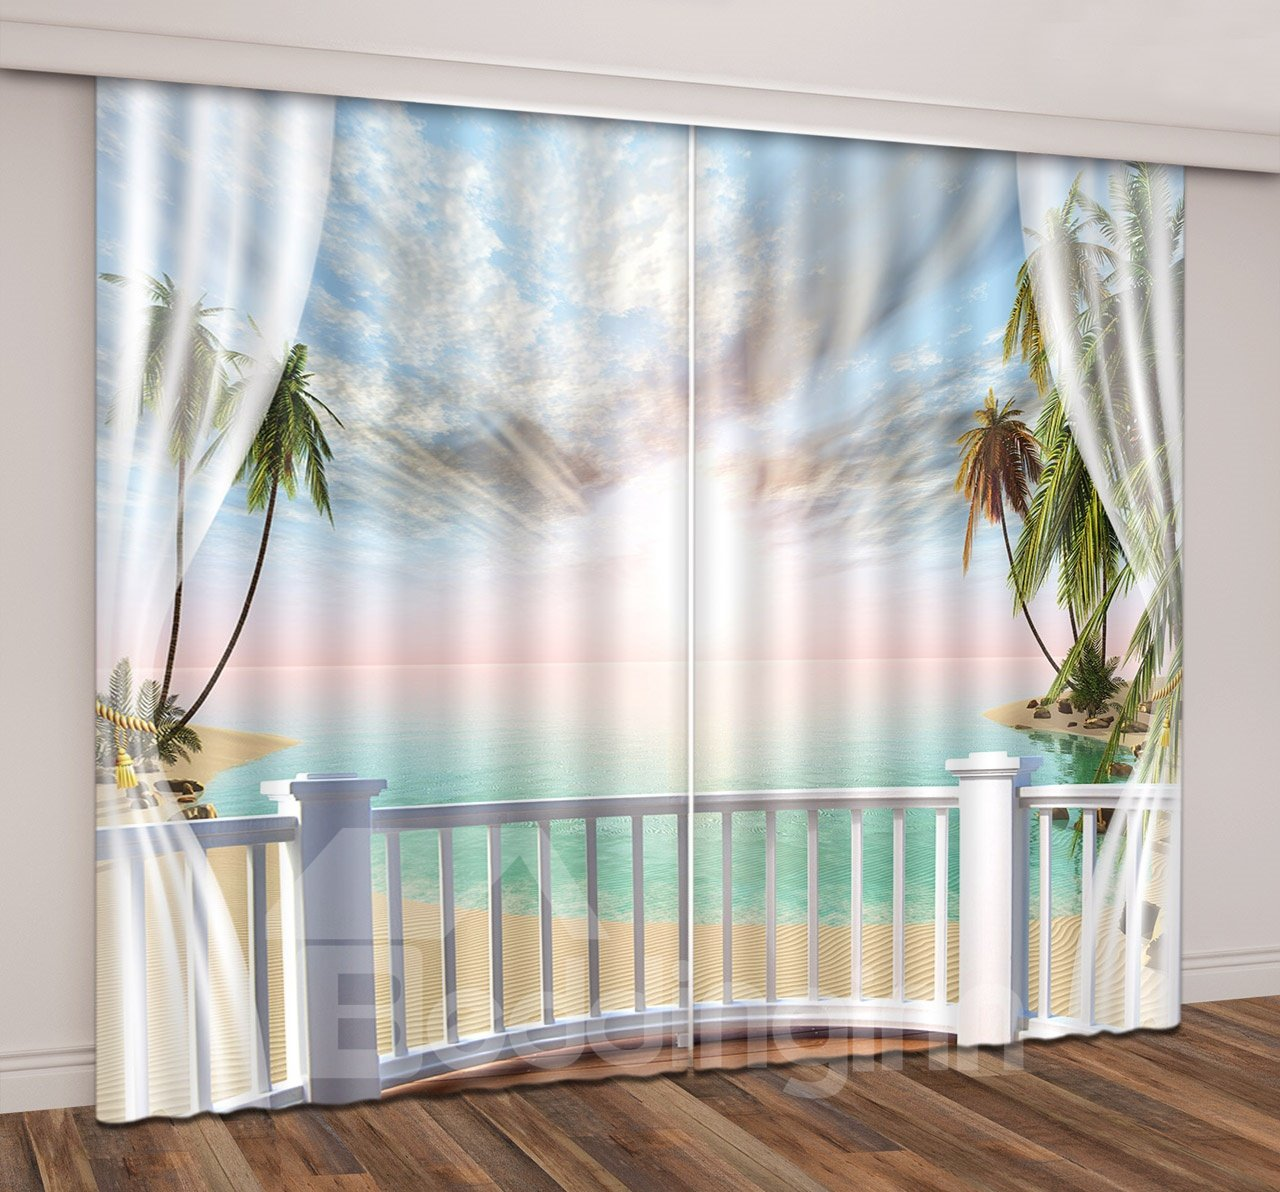 3D Printed Tropical Beach Sunset with Coconut Trees Scenery Custom Living Room Curtain